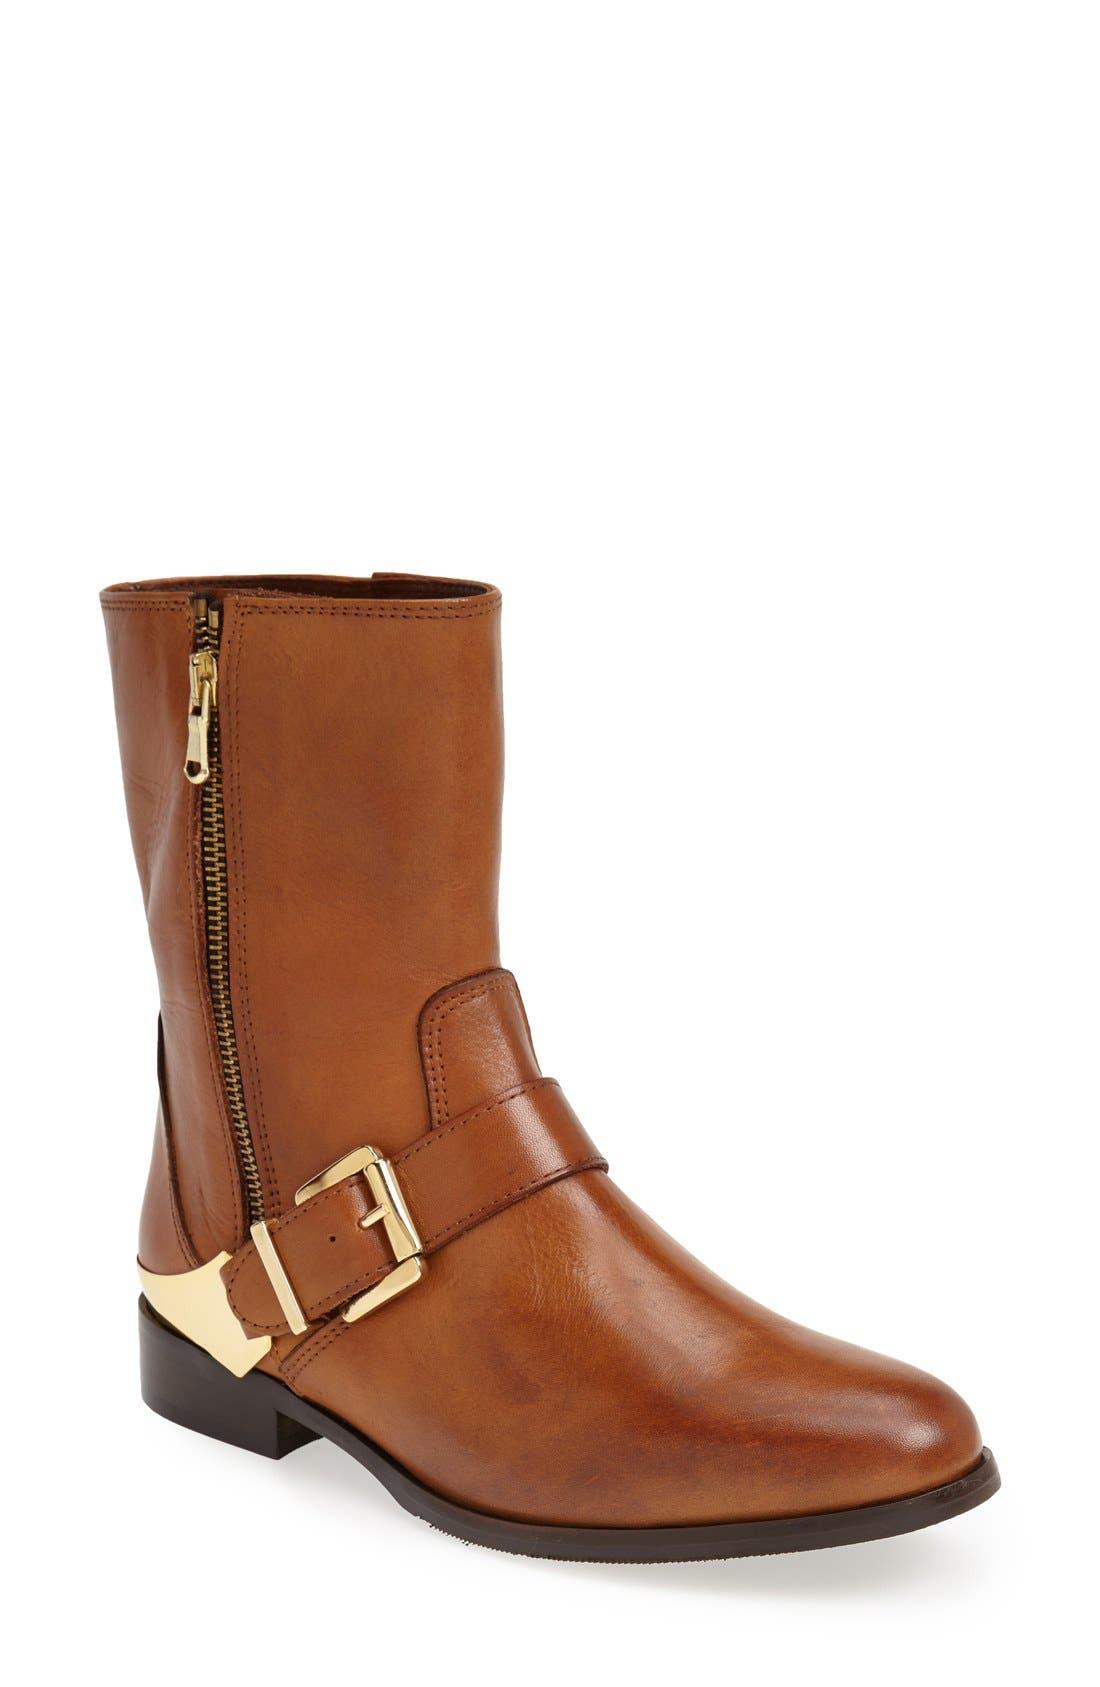 Alternate Image 1 Selected - Charles David 'Remian' Burnished Leather Boot (Women)